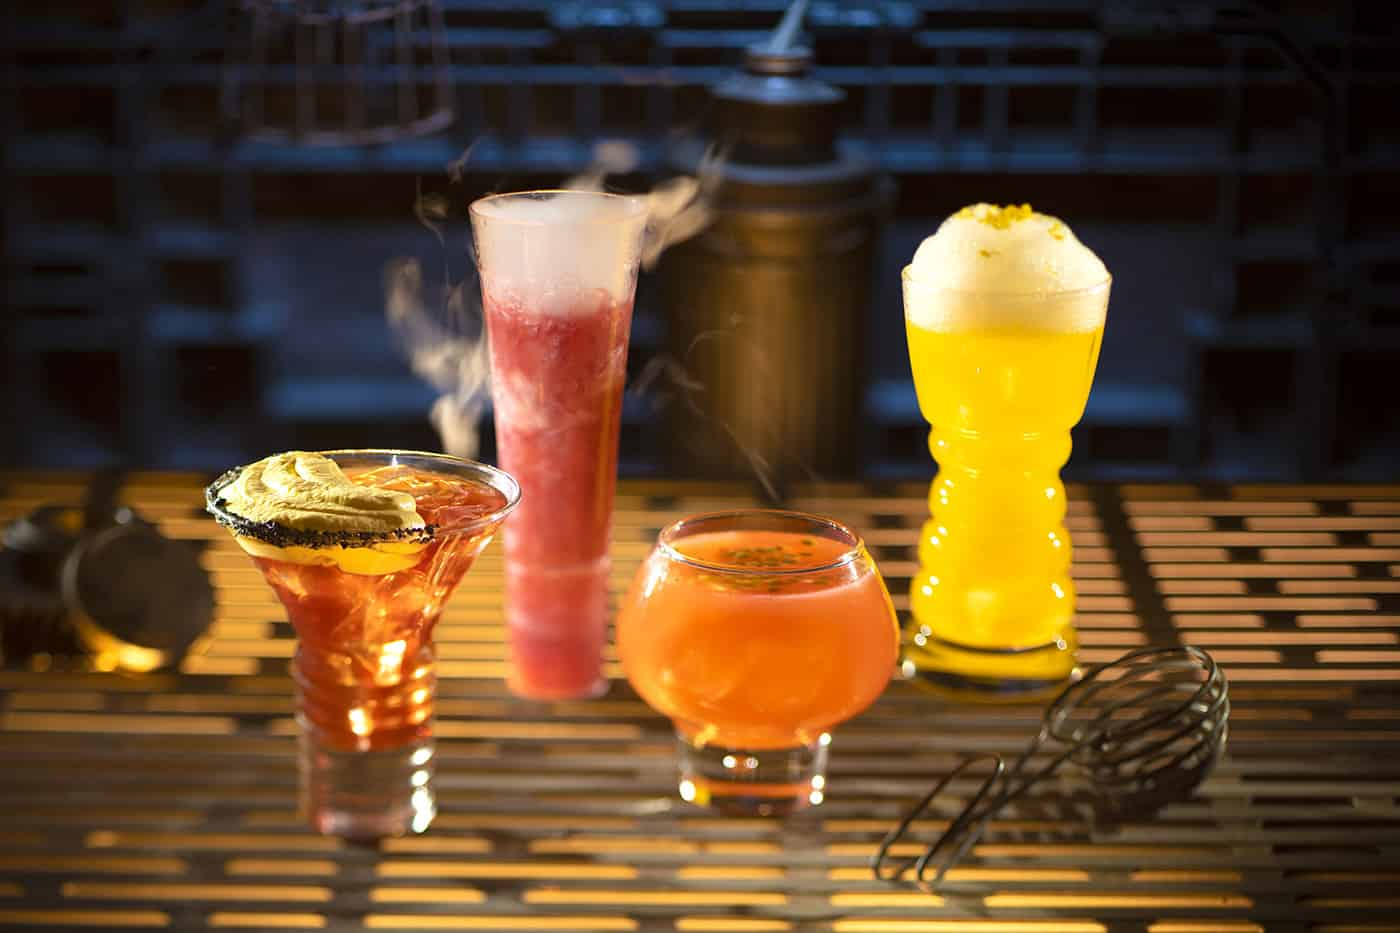 Cocktails from Oga's Cantina